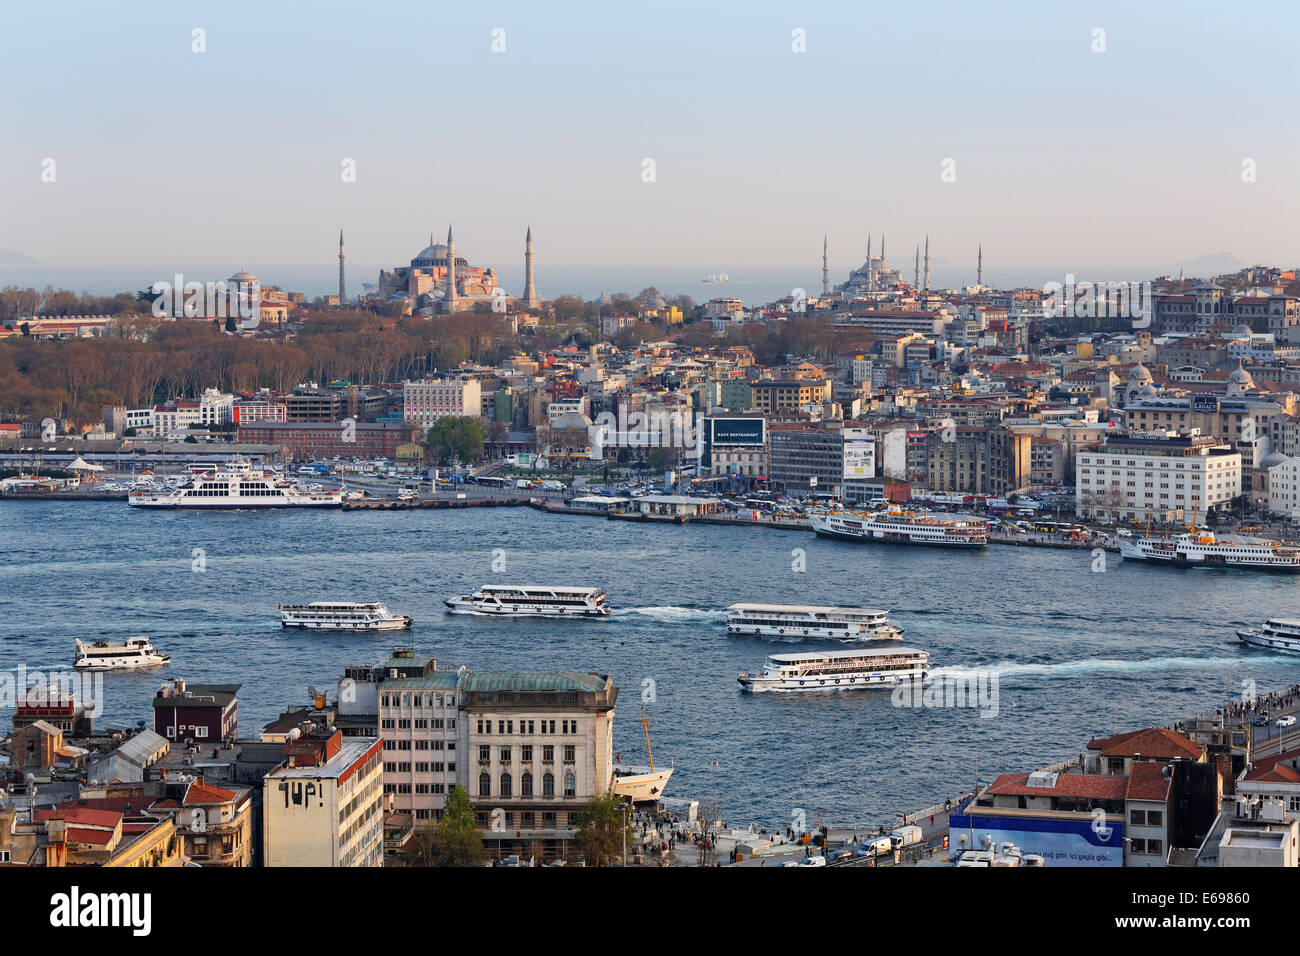 Hagia Sophia and Sultan Ahmed Mosque or Blue Mosque, ferries, Golden Horn, view from Galata Tower, Istanbul, European - Stock Image